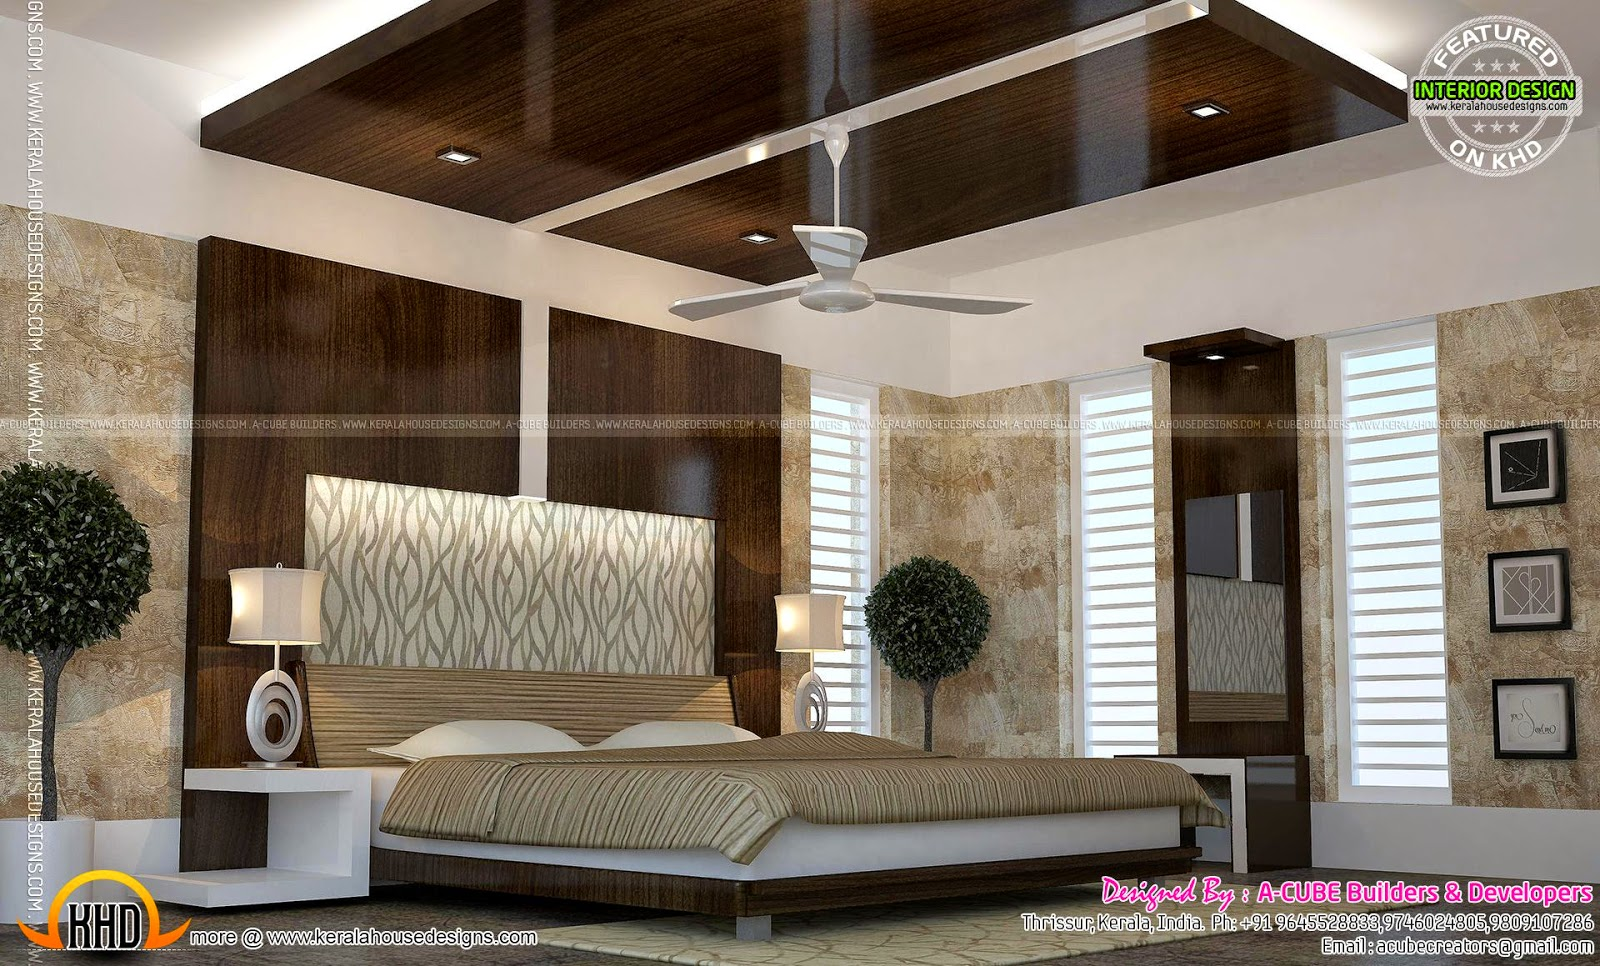 bedroom-interior-04.jpg